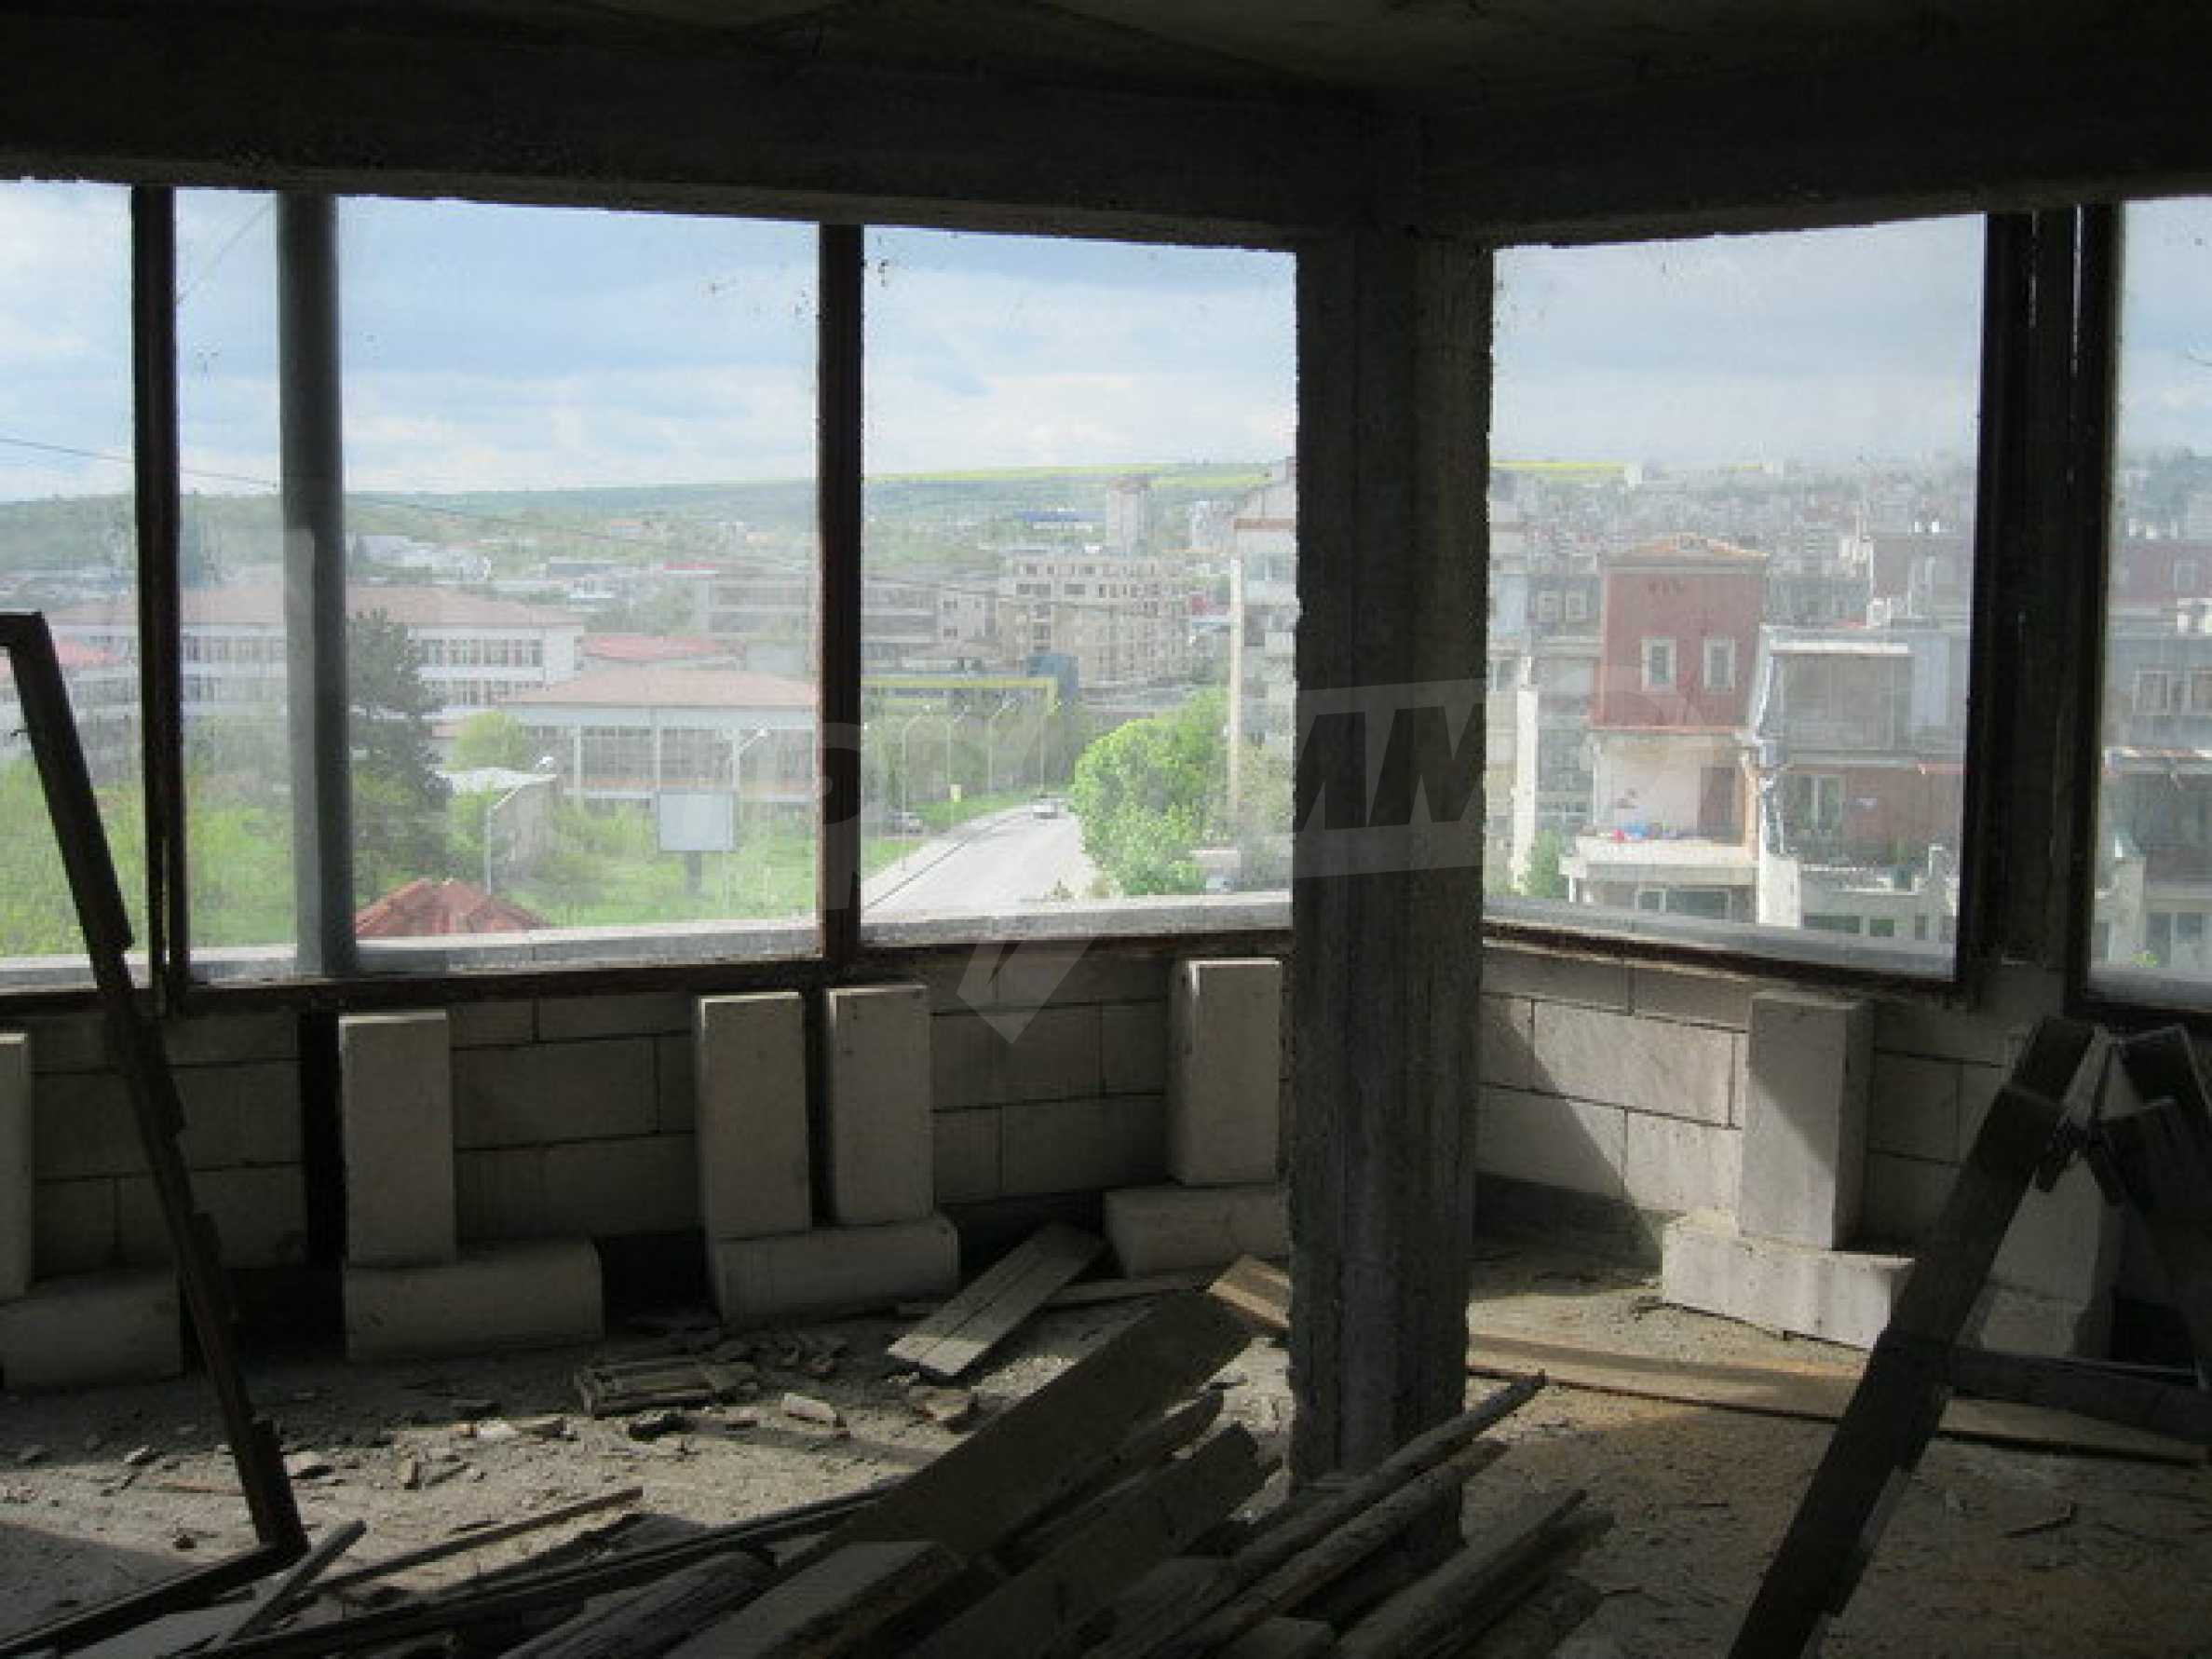 Commercial property on 3 levels for sale in Veliko Tarnovo  34